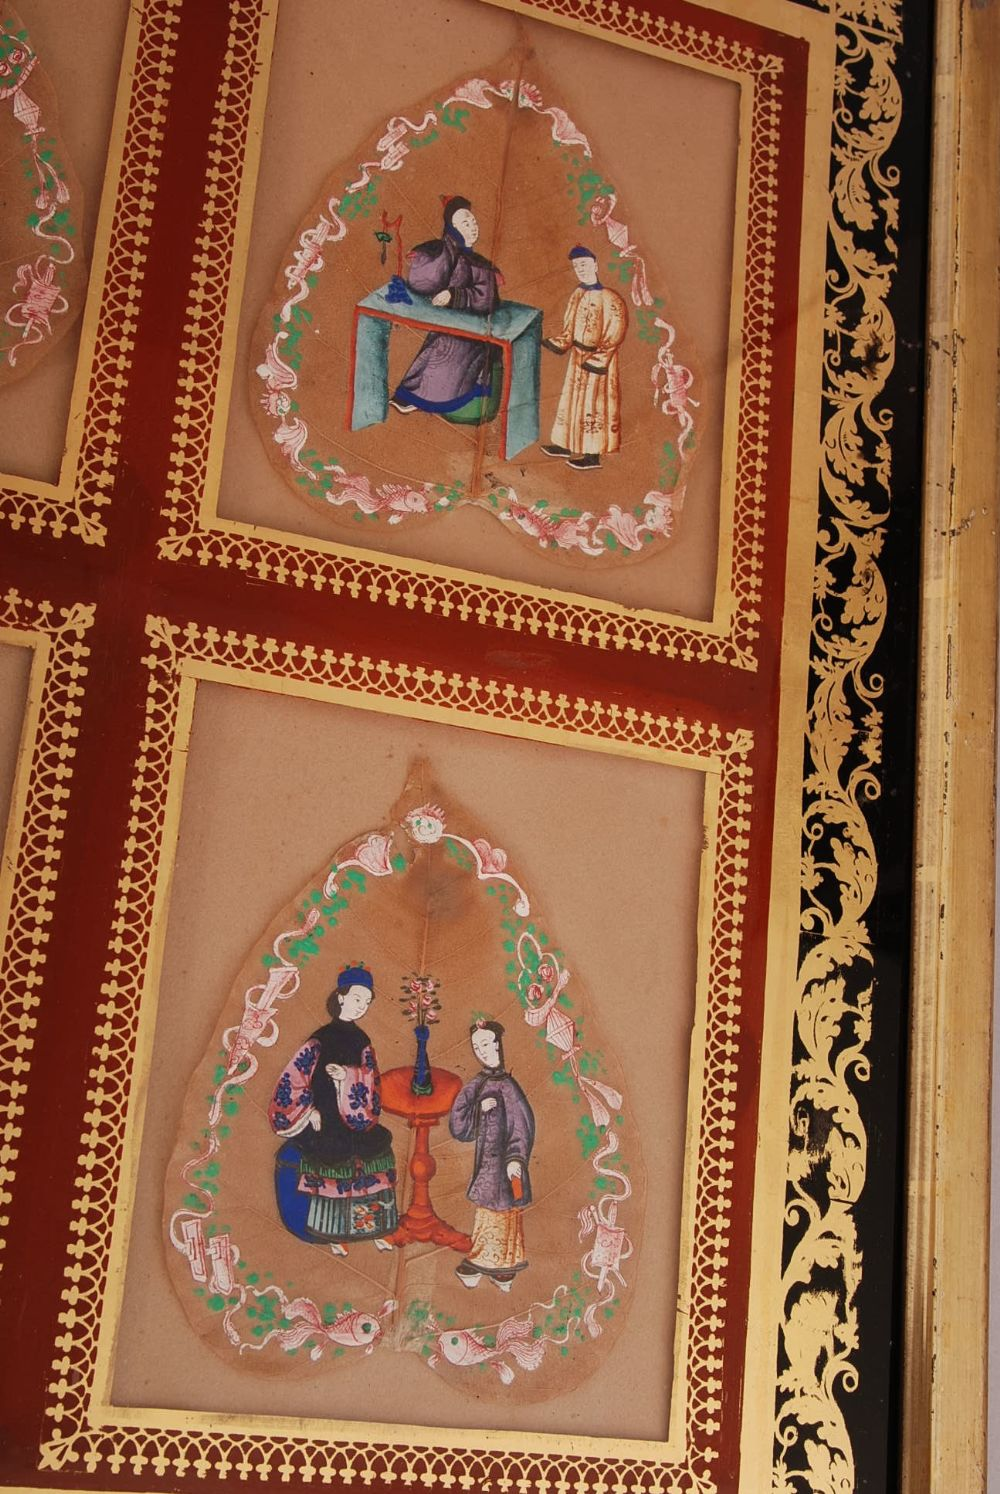 C19th Chinese mounted set of six Bodhi leaf paintings, each painted to depict court figures, all - Image 2 of 4